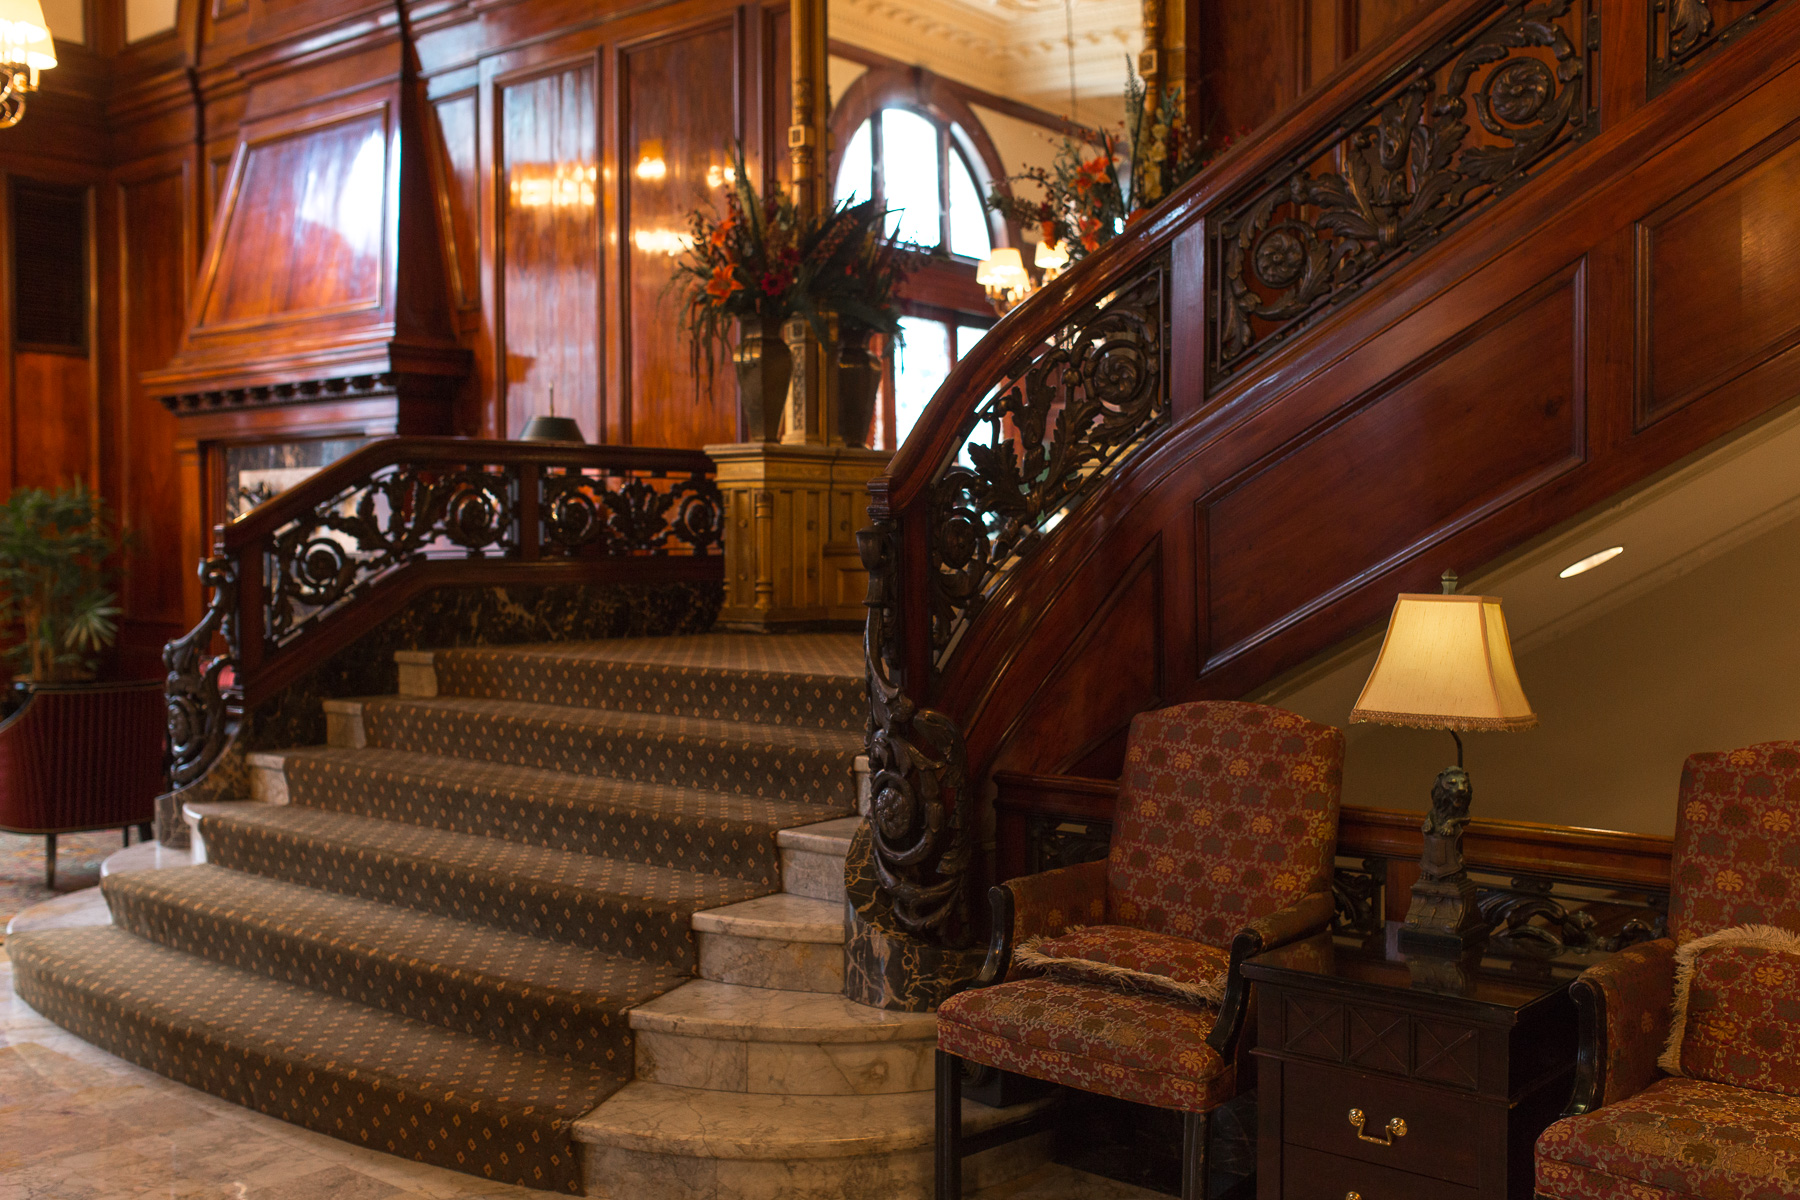 Lumber baron and philanthropist Simon Benson wanted to create the most luxurious and modern hotel west of the Mississippi and spent over $1 million in 1913 bringing in Italian marble for the floors, French terracotta tiles for the ceilings and Russian hardwoods for the wood paneling. (Image: Paola Thomas / Seattle Refined)